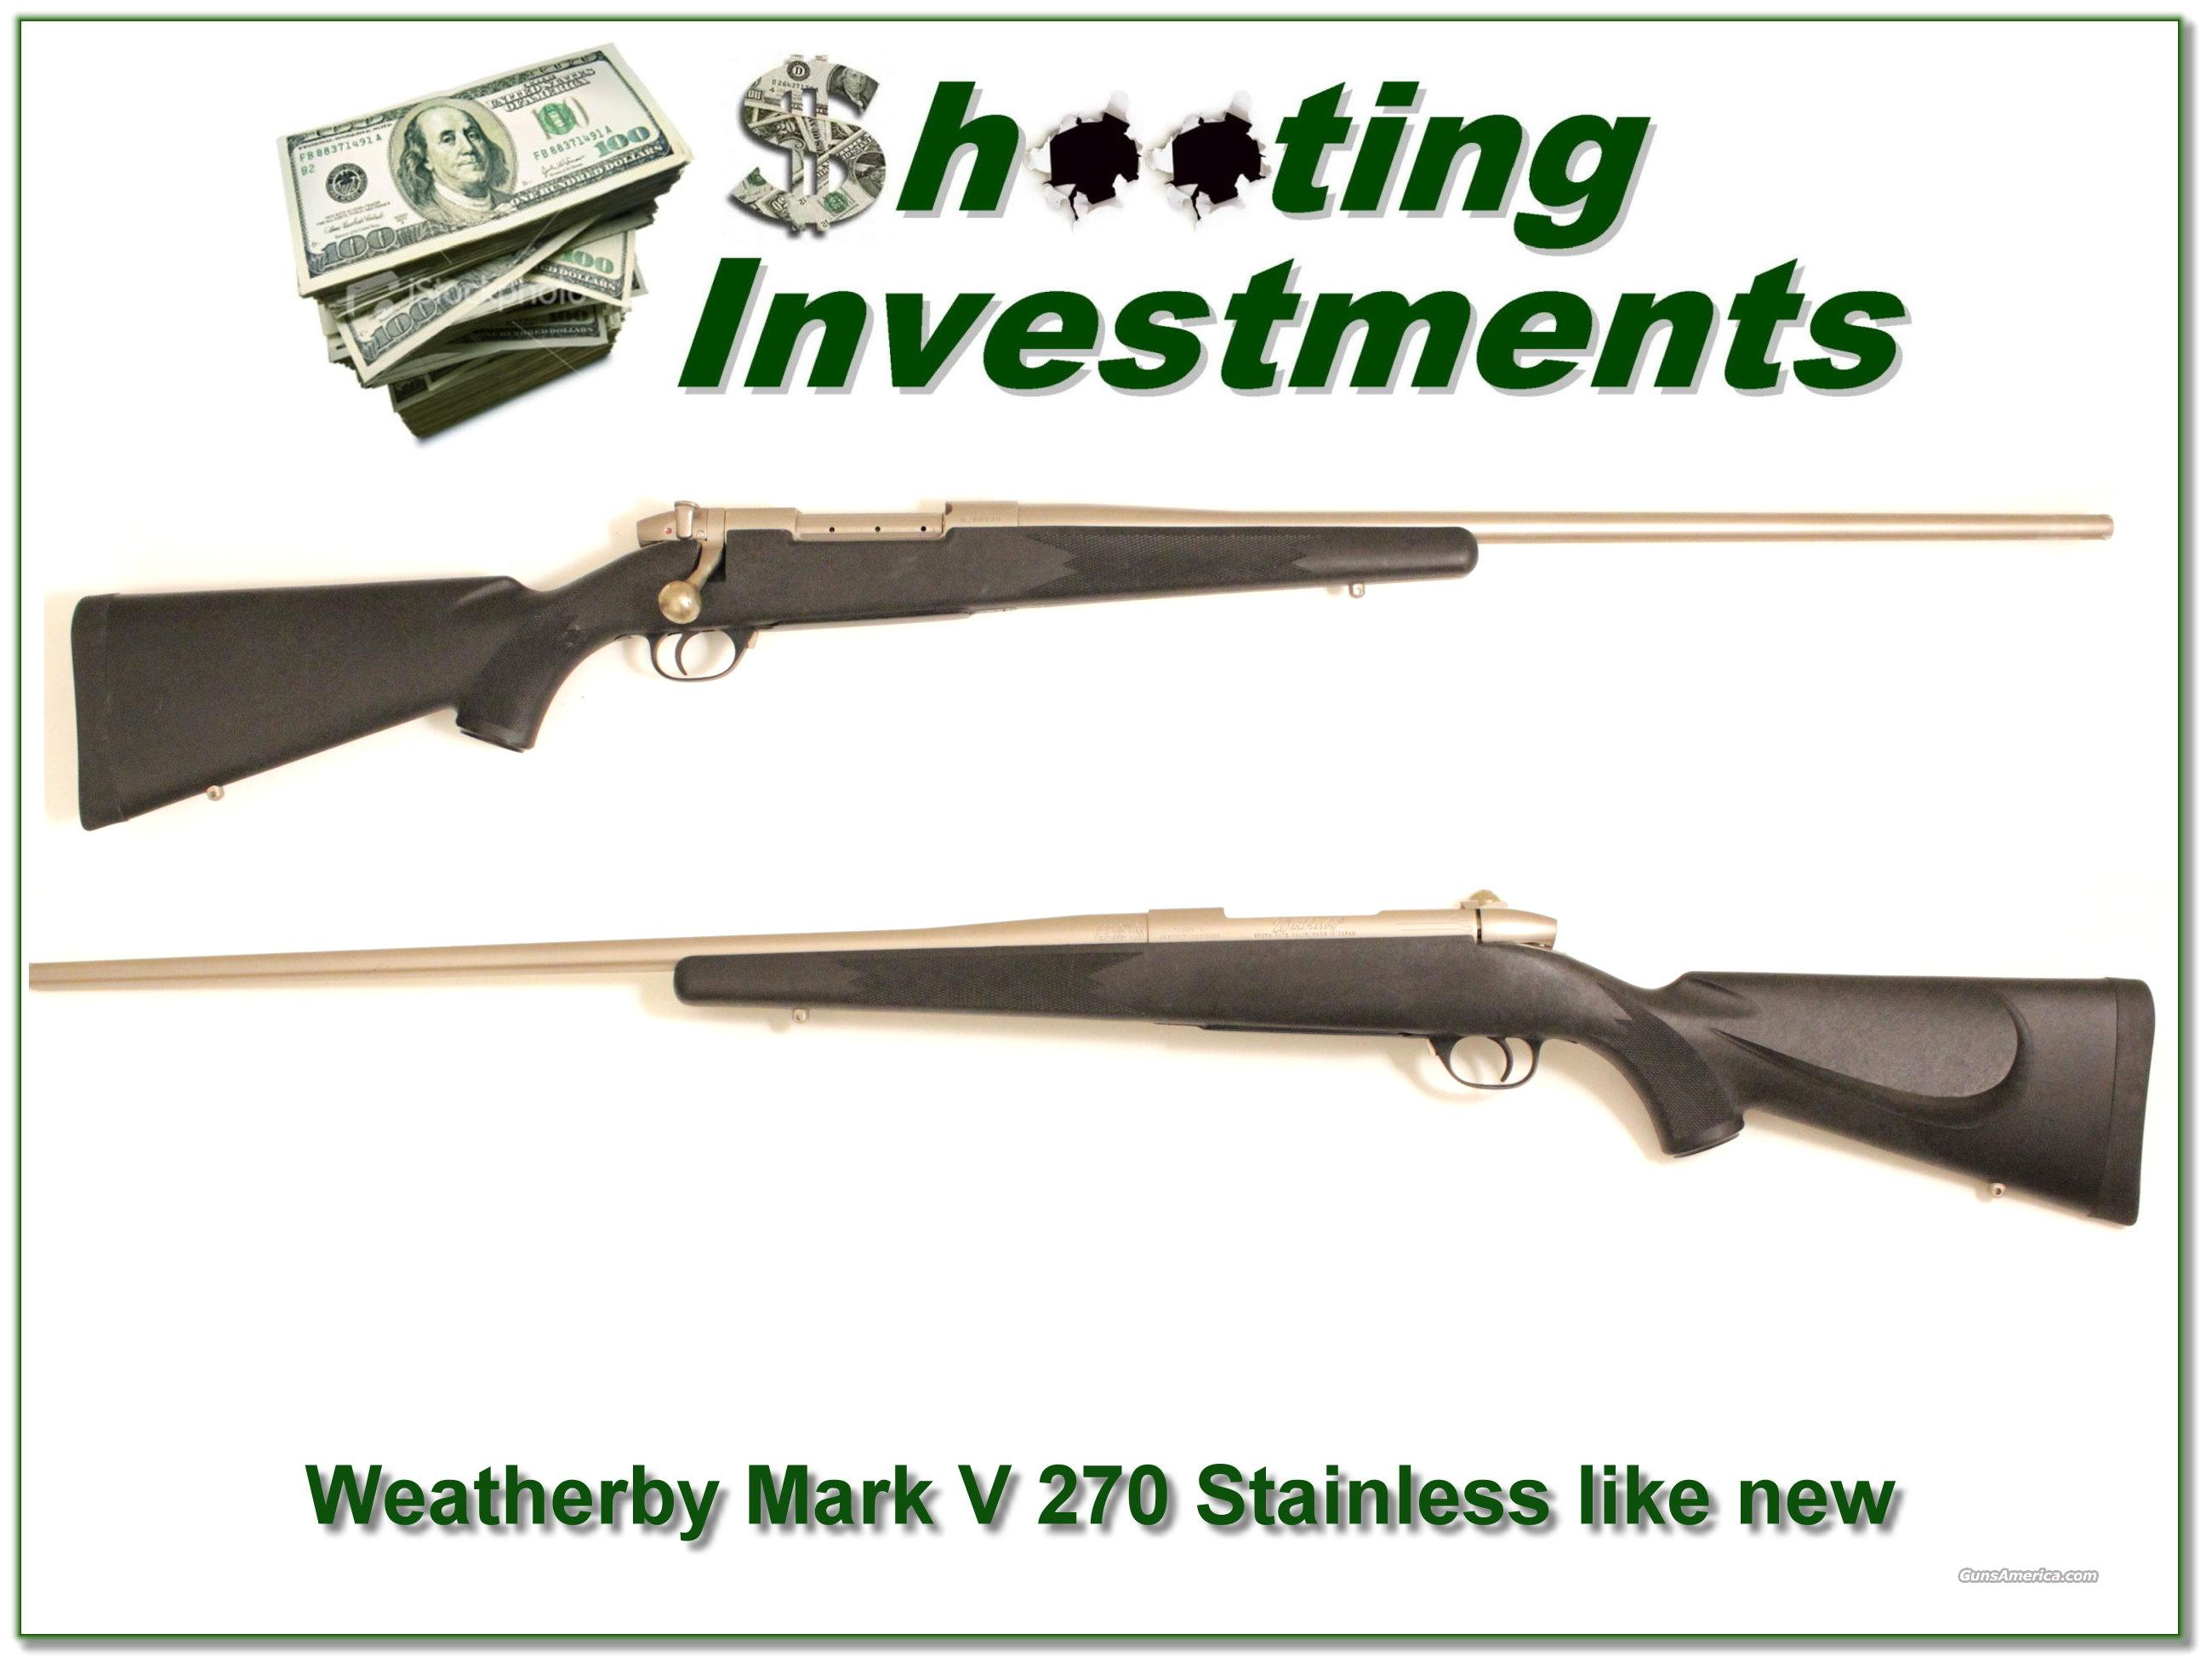 Weatherby Mark V Stainless 270 Wthy Mag like new  Guns > Rifles > Weatherby Rifles > Sporting